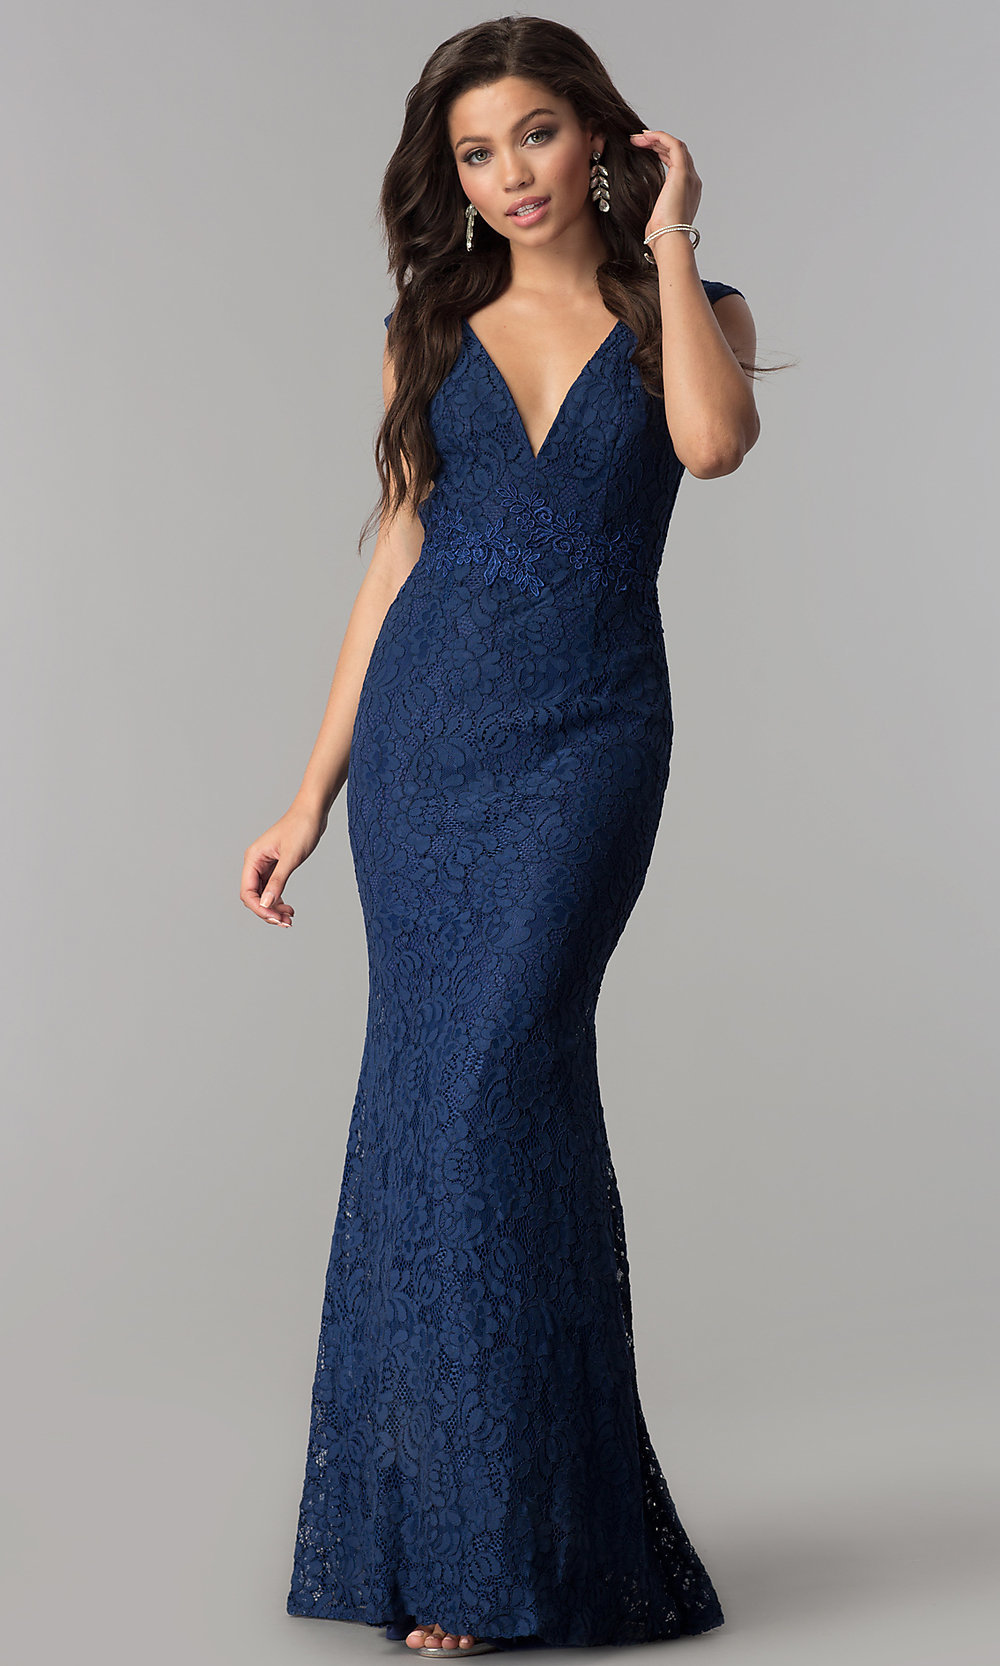 3e4c0fd73b ... v-neck prom dress in navy lace. Style. Tap to expand